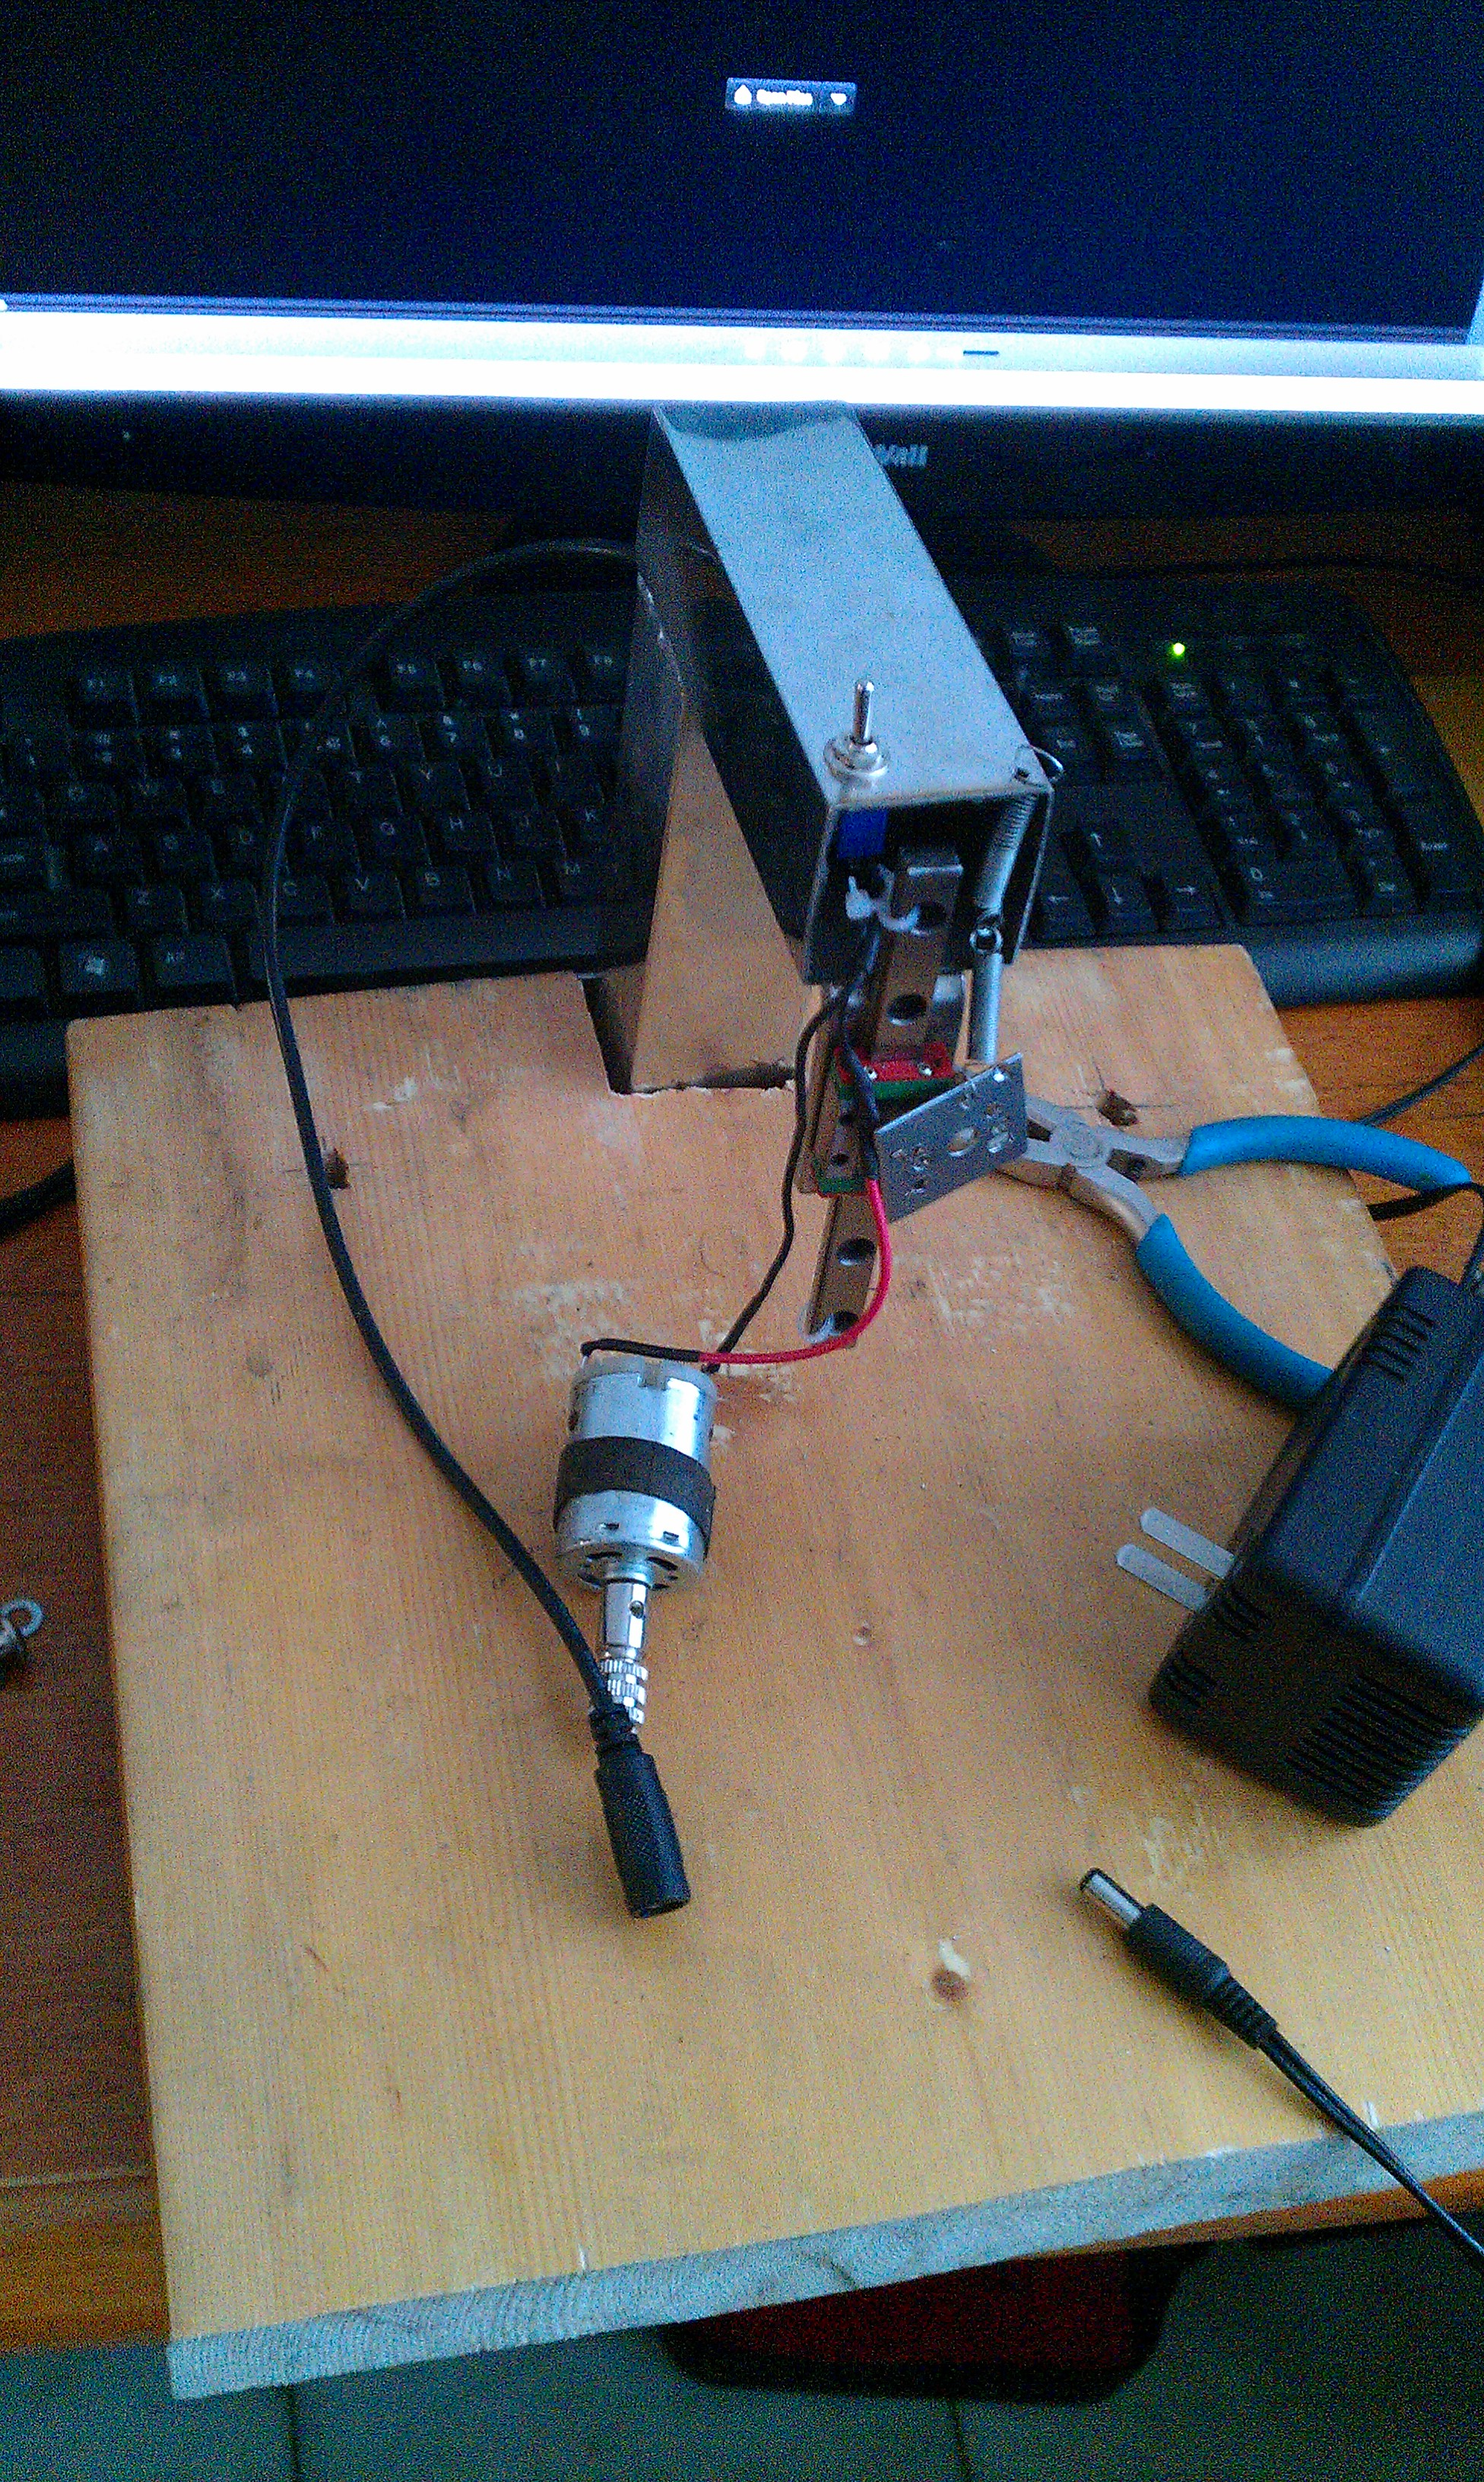 easy PCB drill press run by a 12V power source